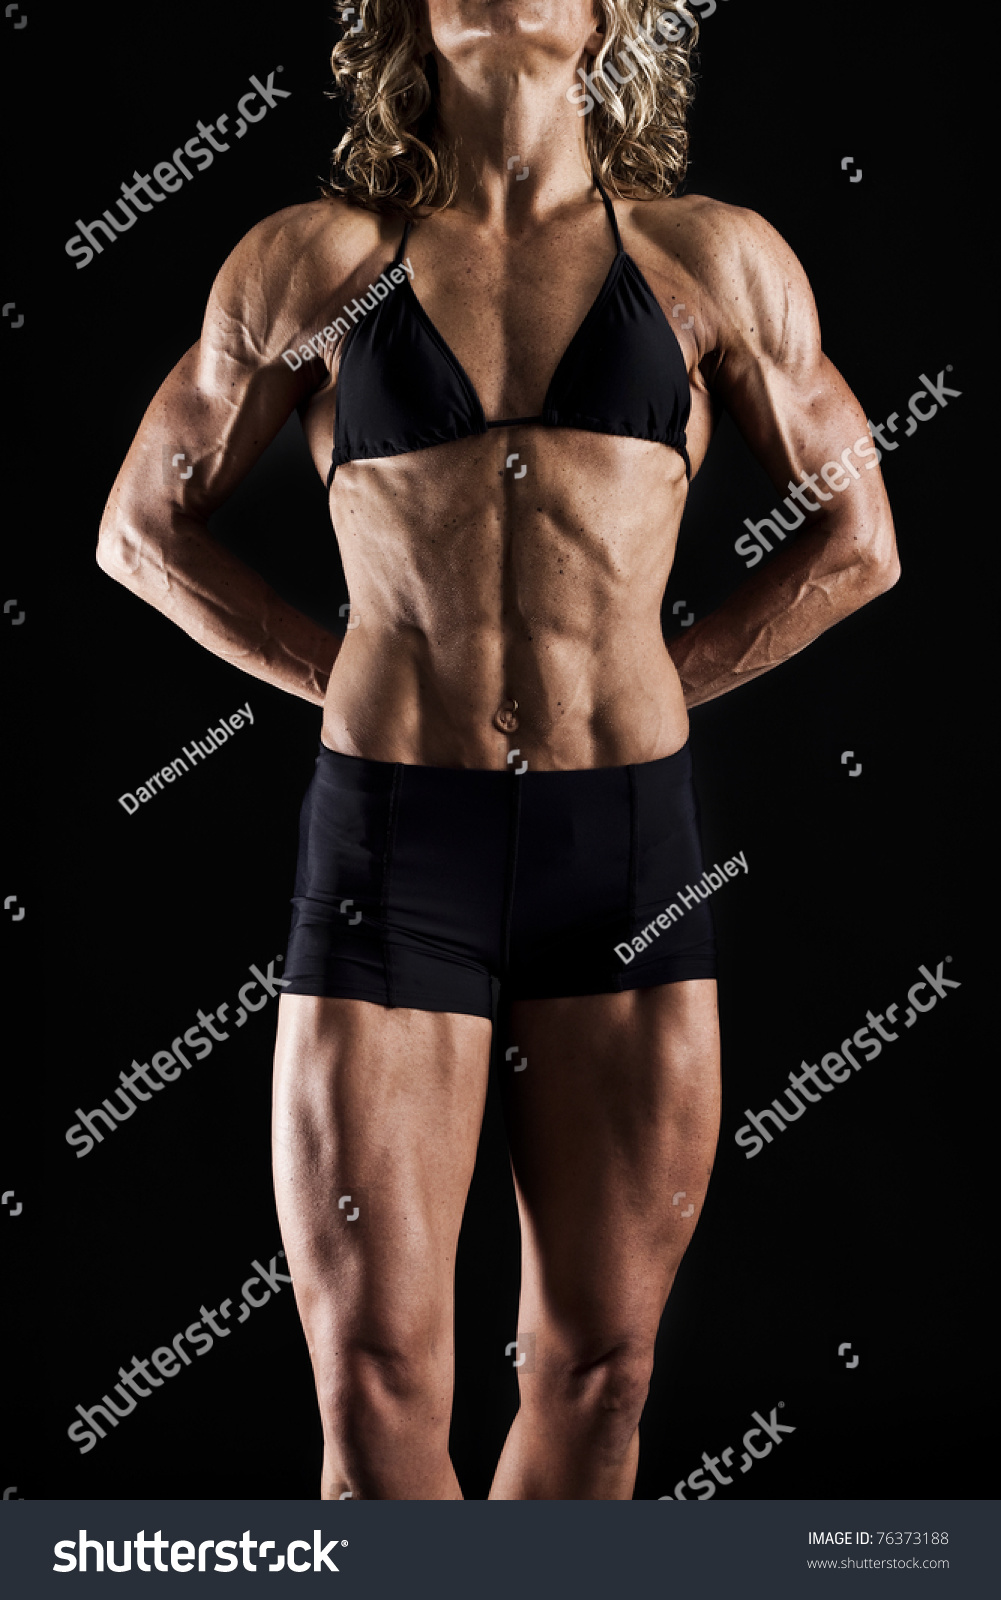 Very Toned Female Body Builder Stock Photo 76373188 - Shutterstock